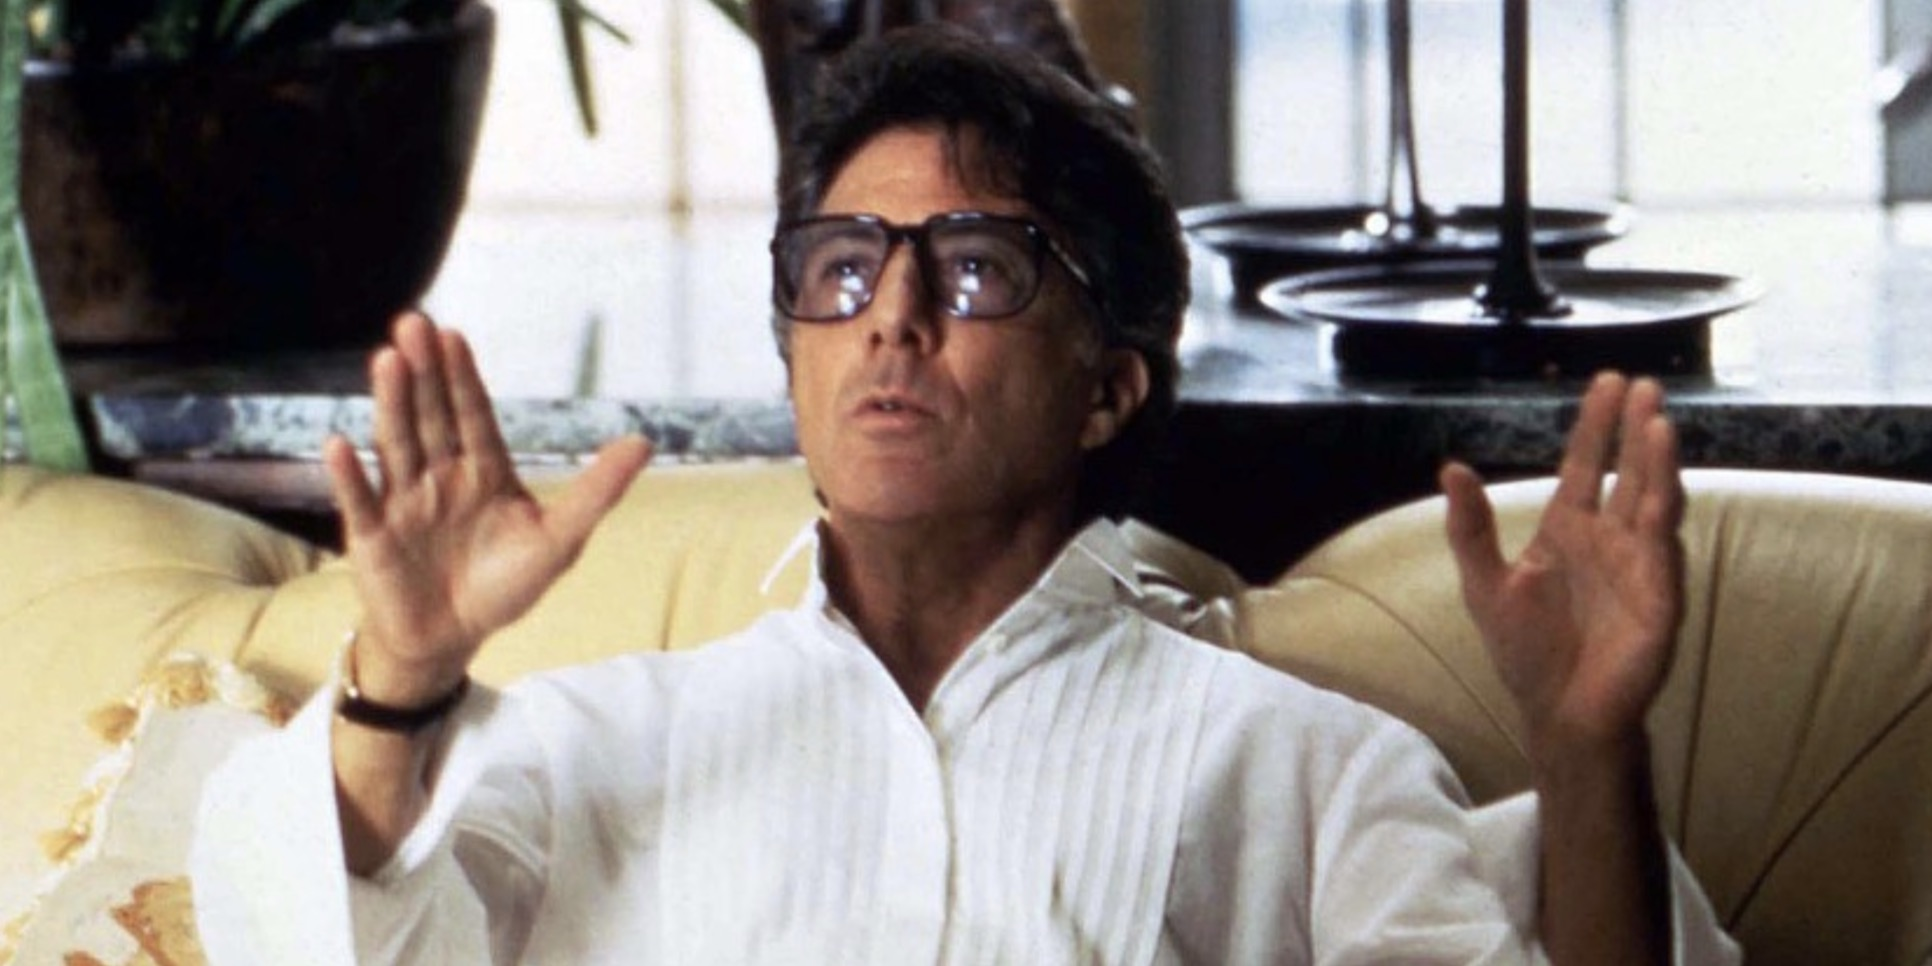 Dustin Hoffman, movies, Wag the Dog